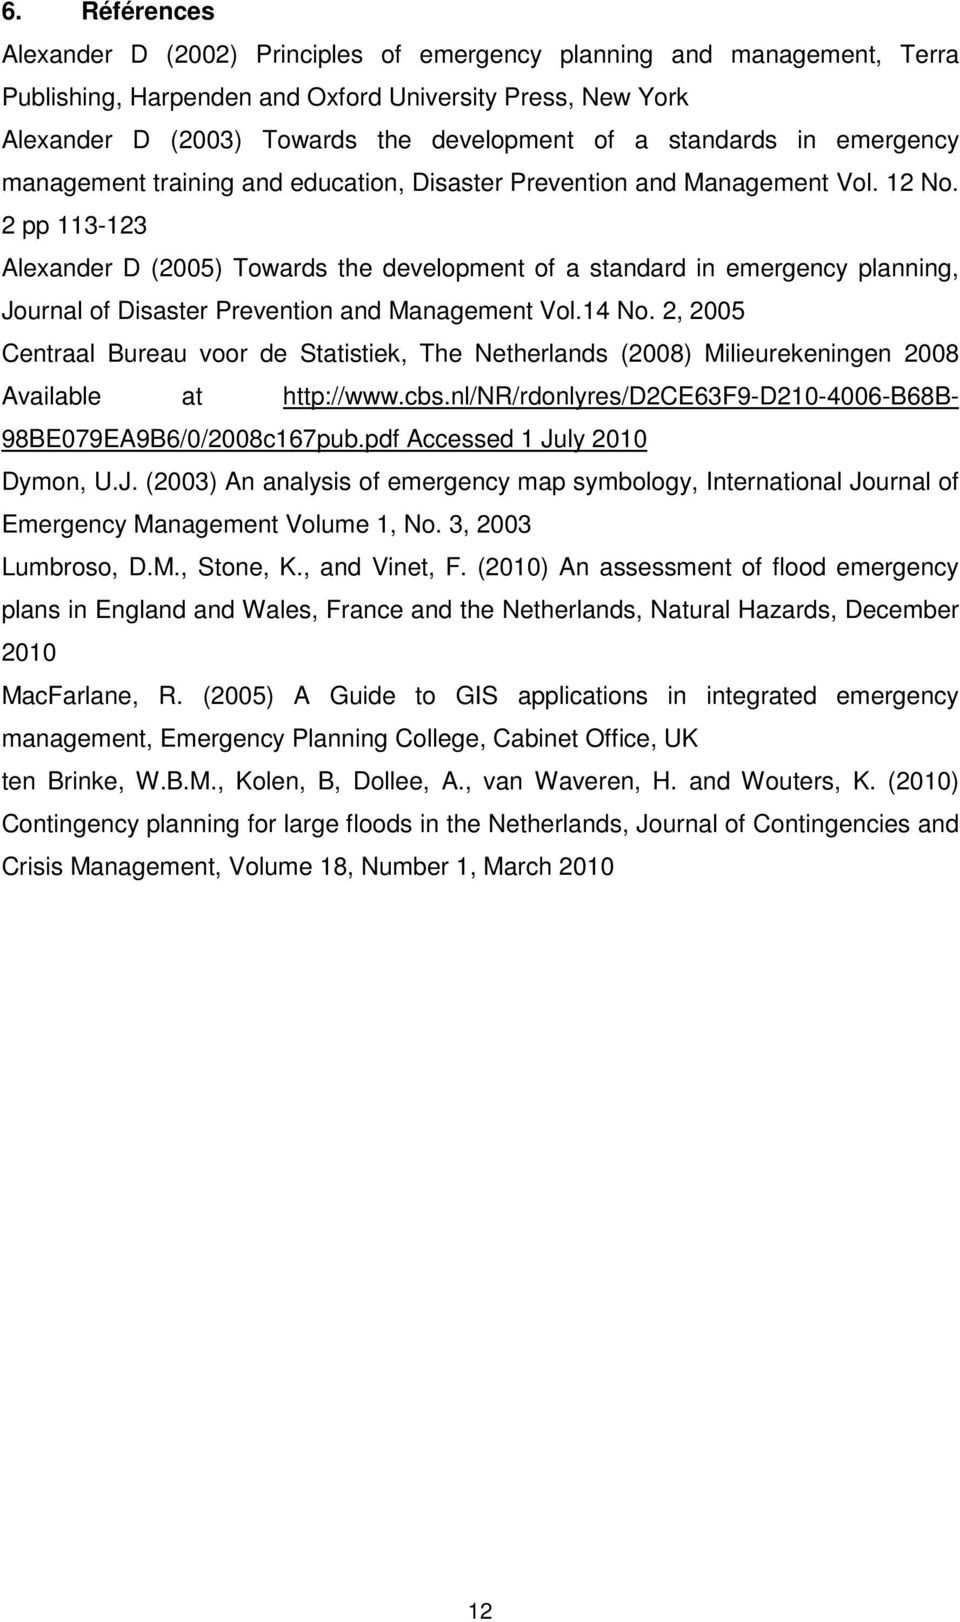 2 pp 113-123 Alexander D (2005) Towards the development of a standard in emergency planning, Journal of Disaster Prevention and Management Vol.14 No.